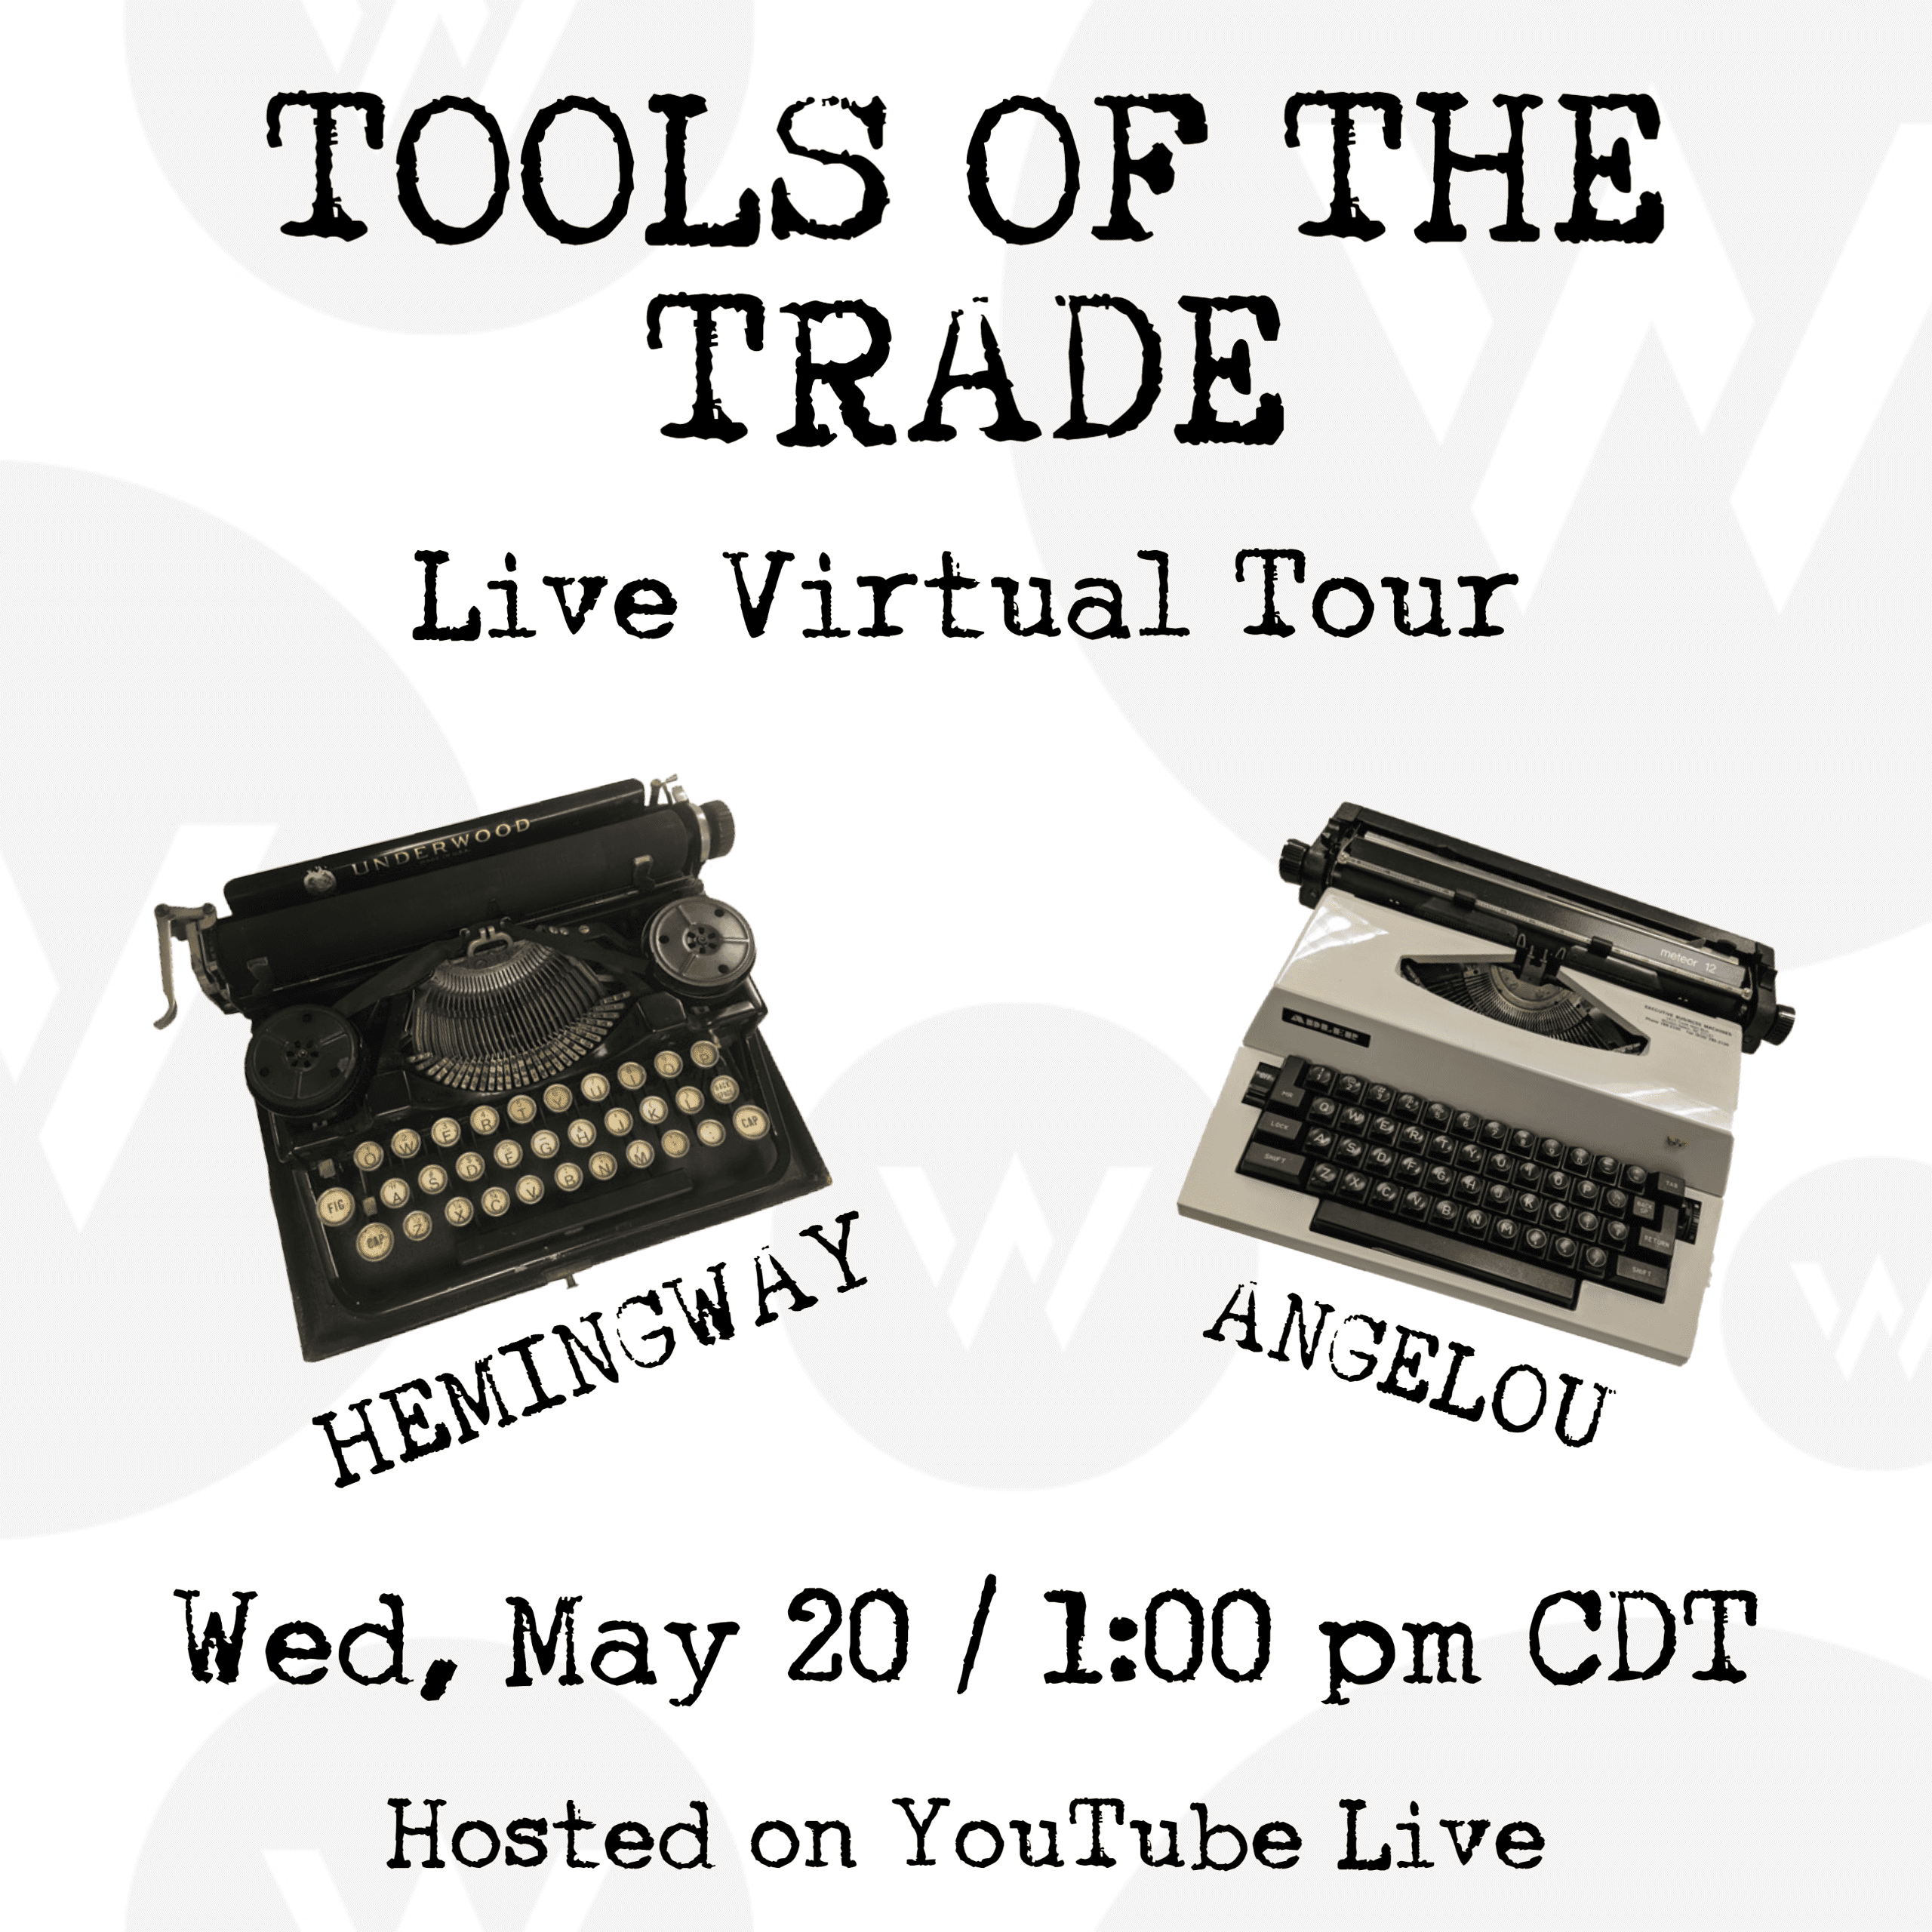 Tools of the Trade Virtual Tour